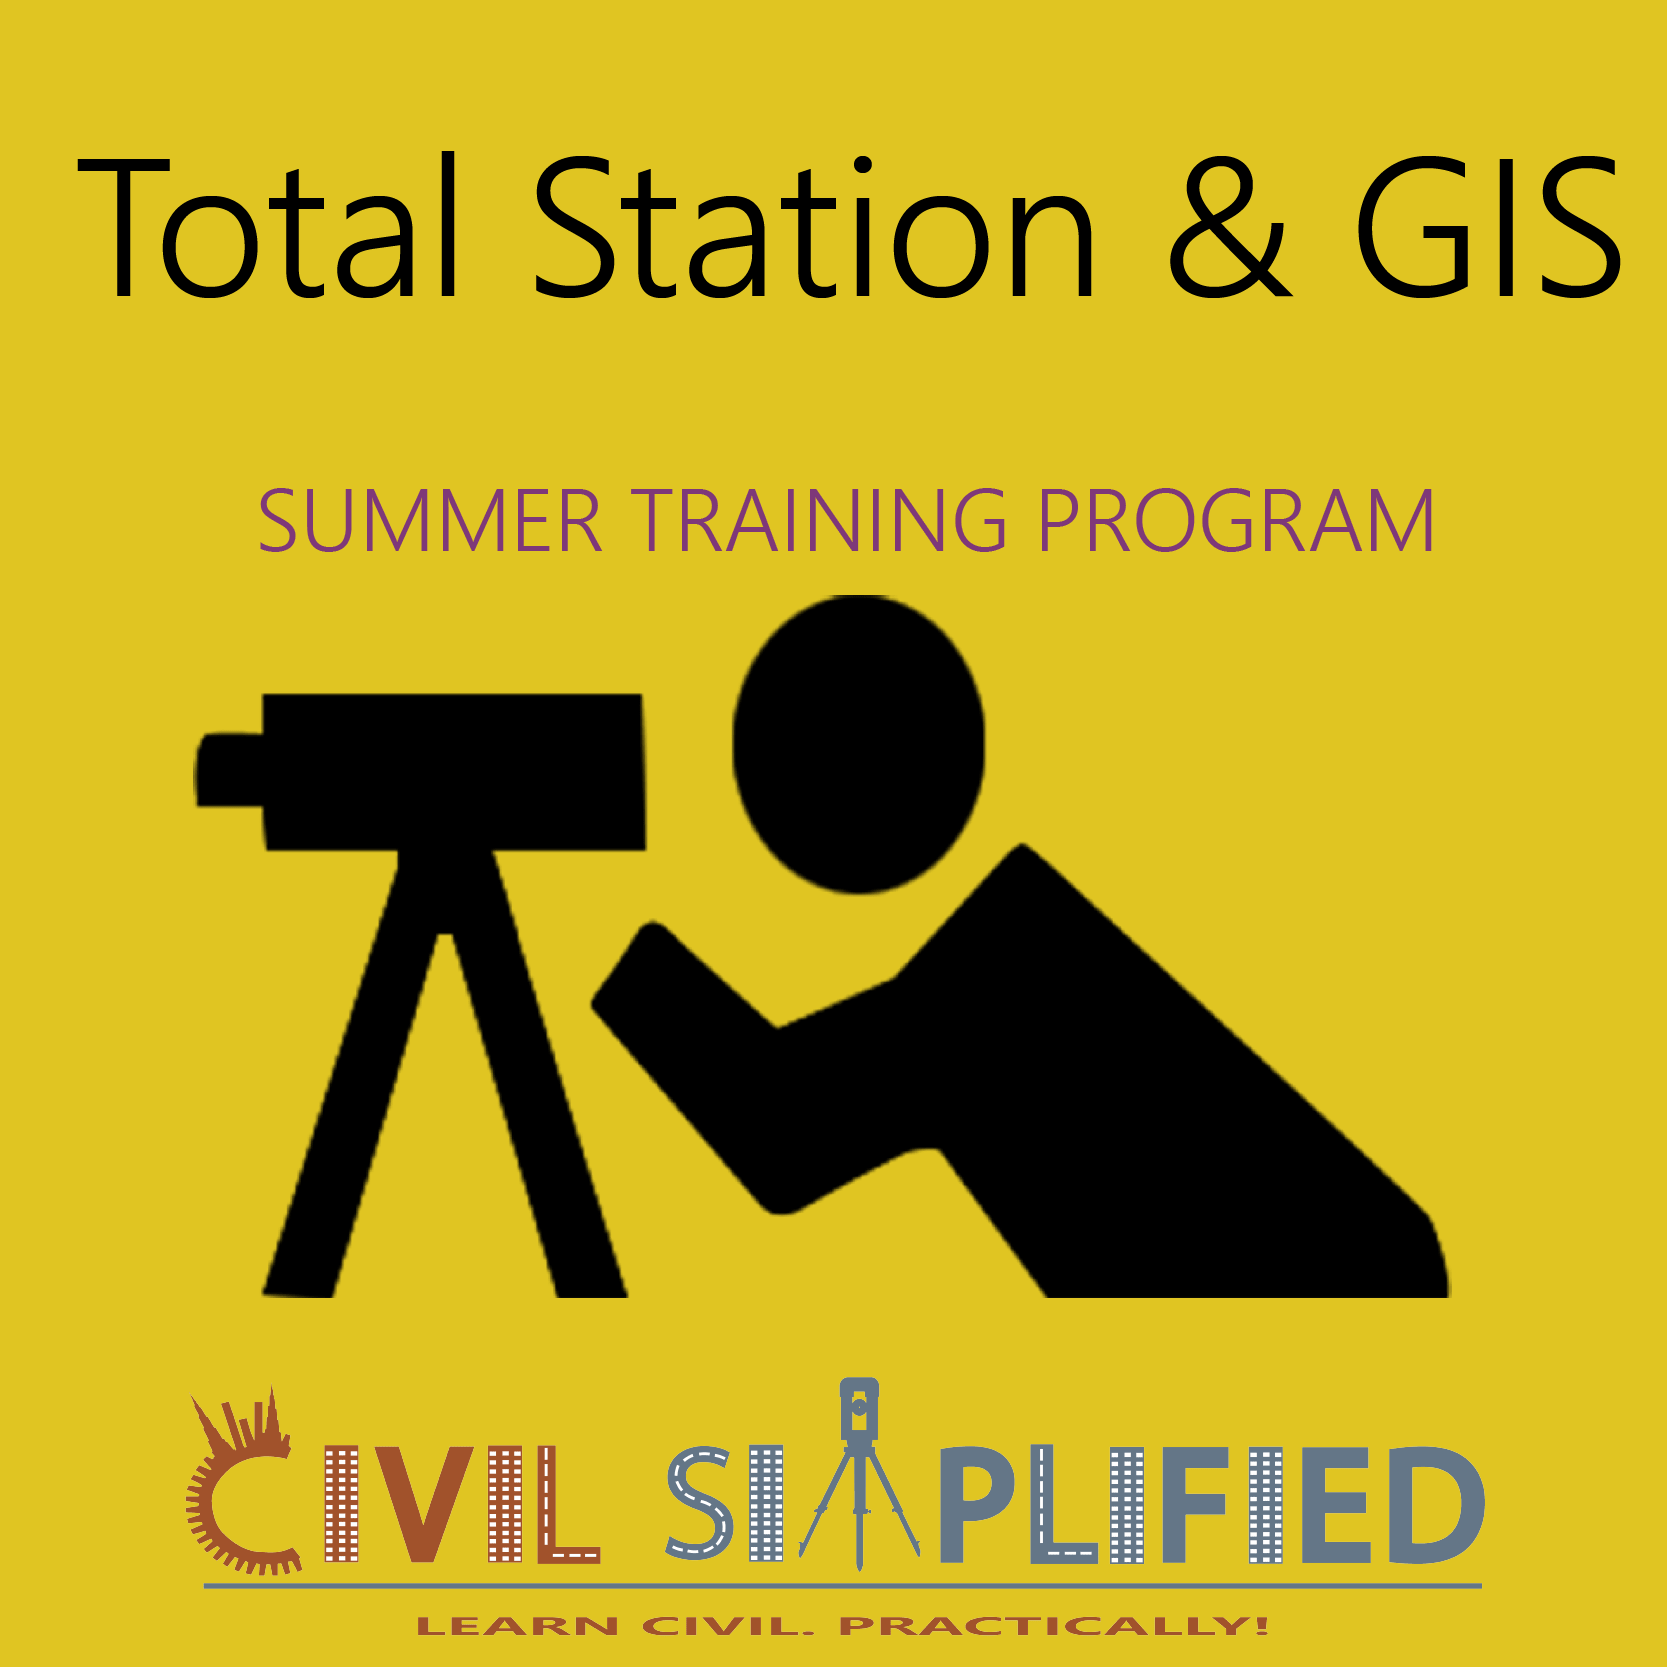 Summer Training Program in Civil Engineering - Total Station and GIS in Chennai